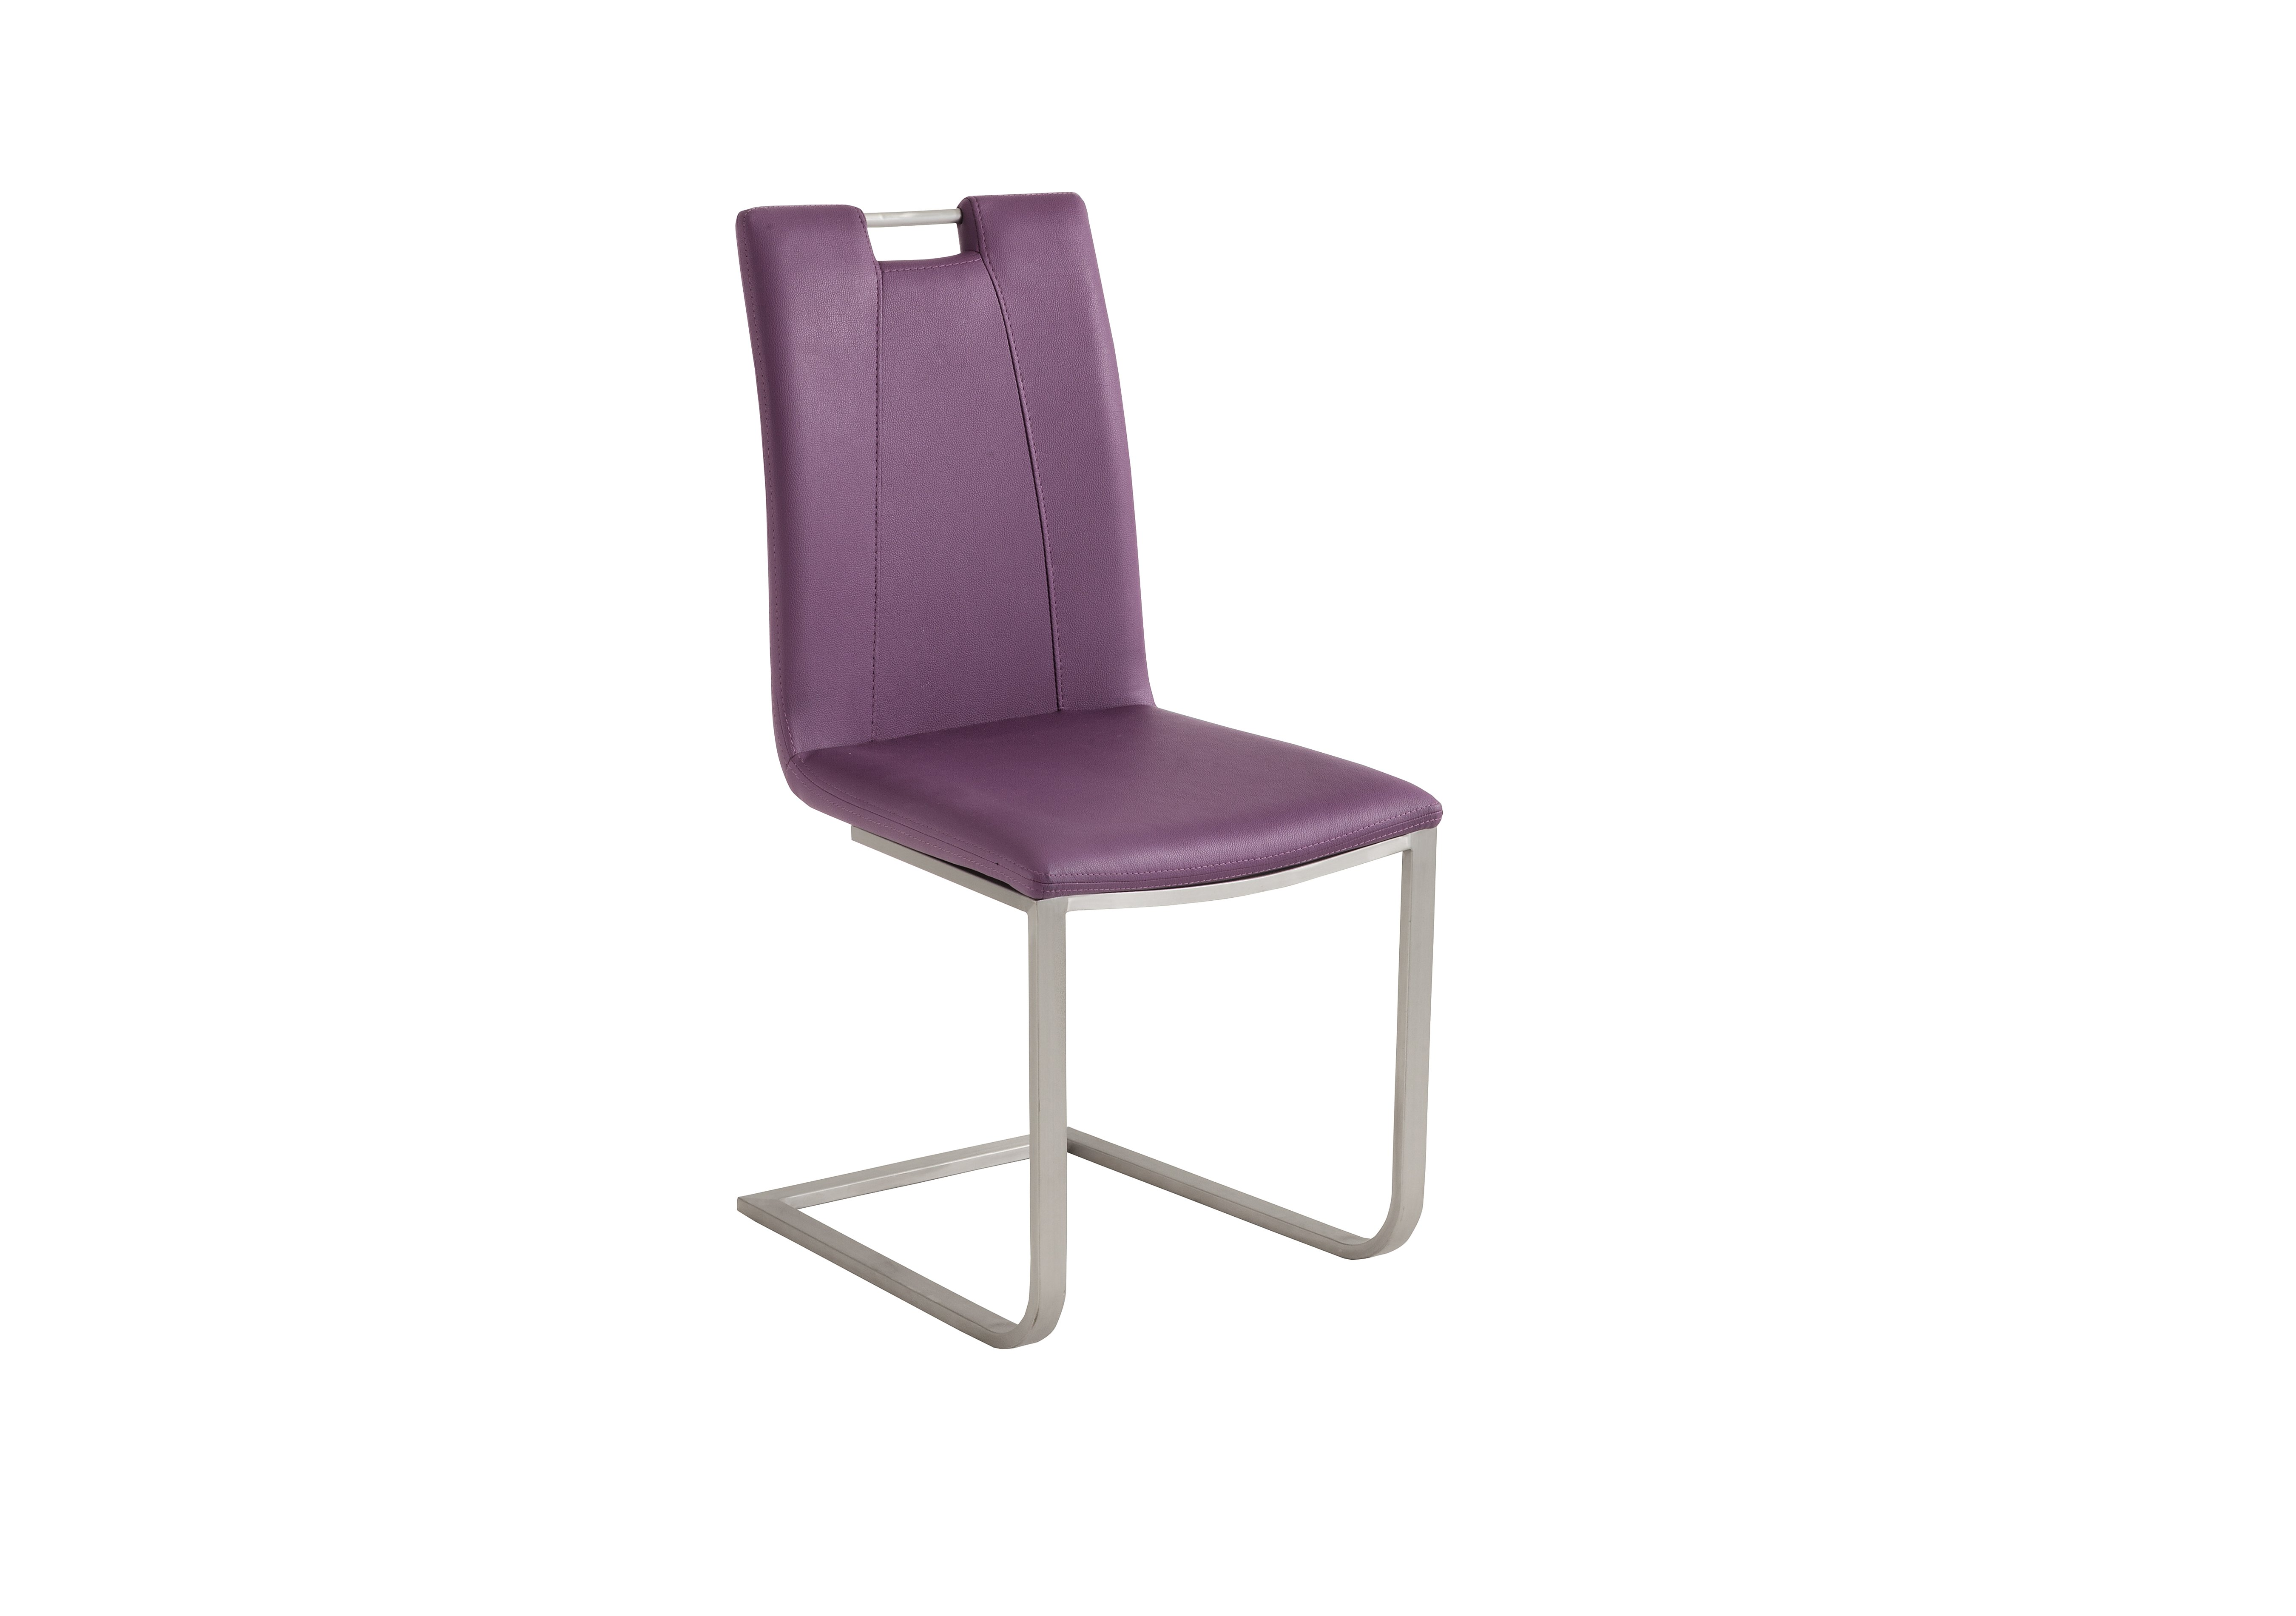 Grande Dining Chair, Currently available from: Furniture Village for £119